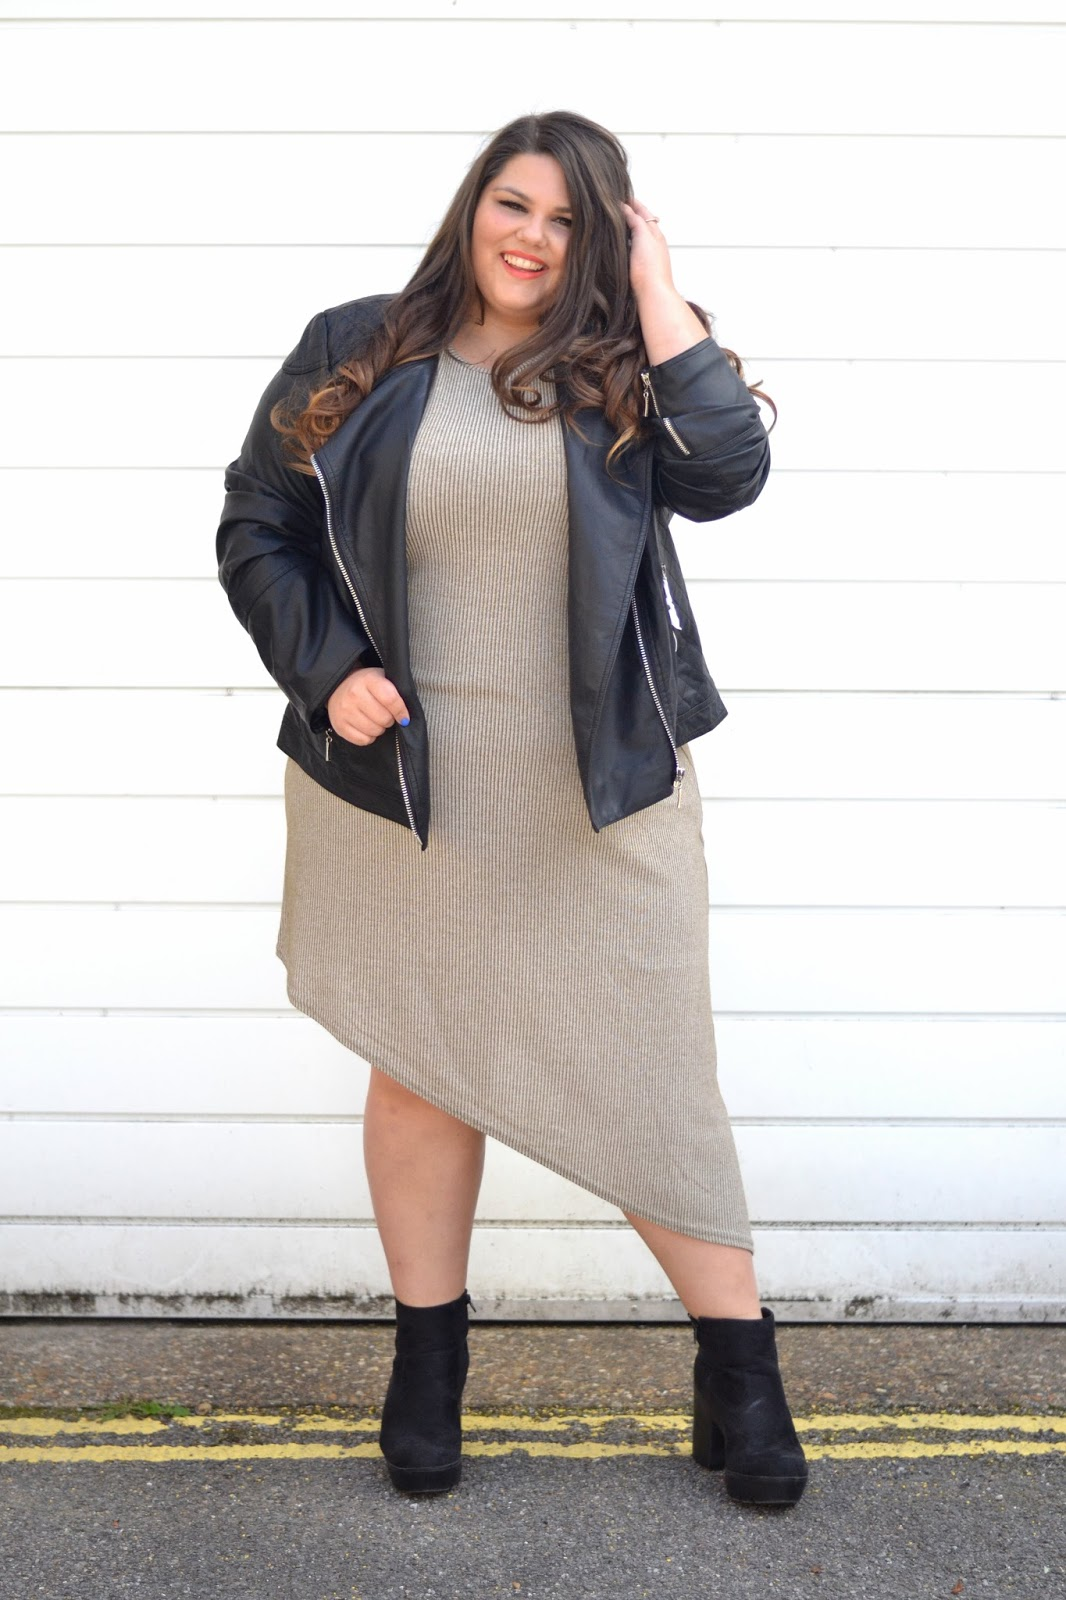 Leather jacket boohoo - The Outfit I Chose For Day Two Of Ukpsfw Was A Very Minimal Look With An Asymmetrical Dress Leather Jacket And Chunky Suedette Boots